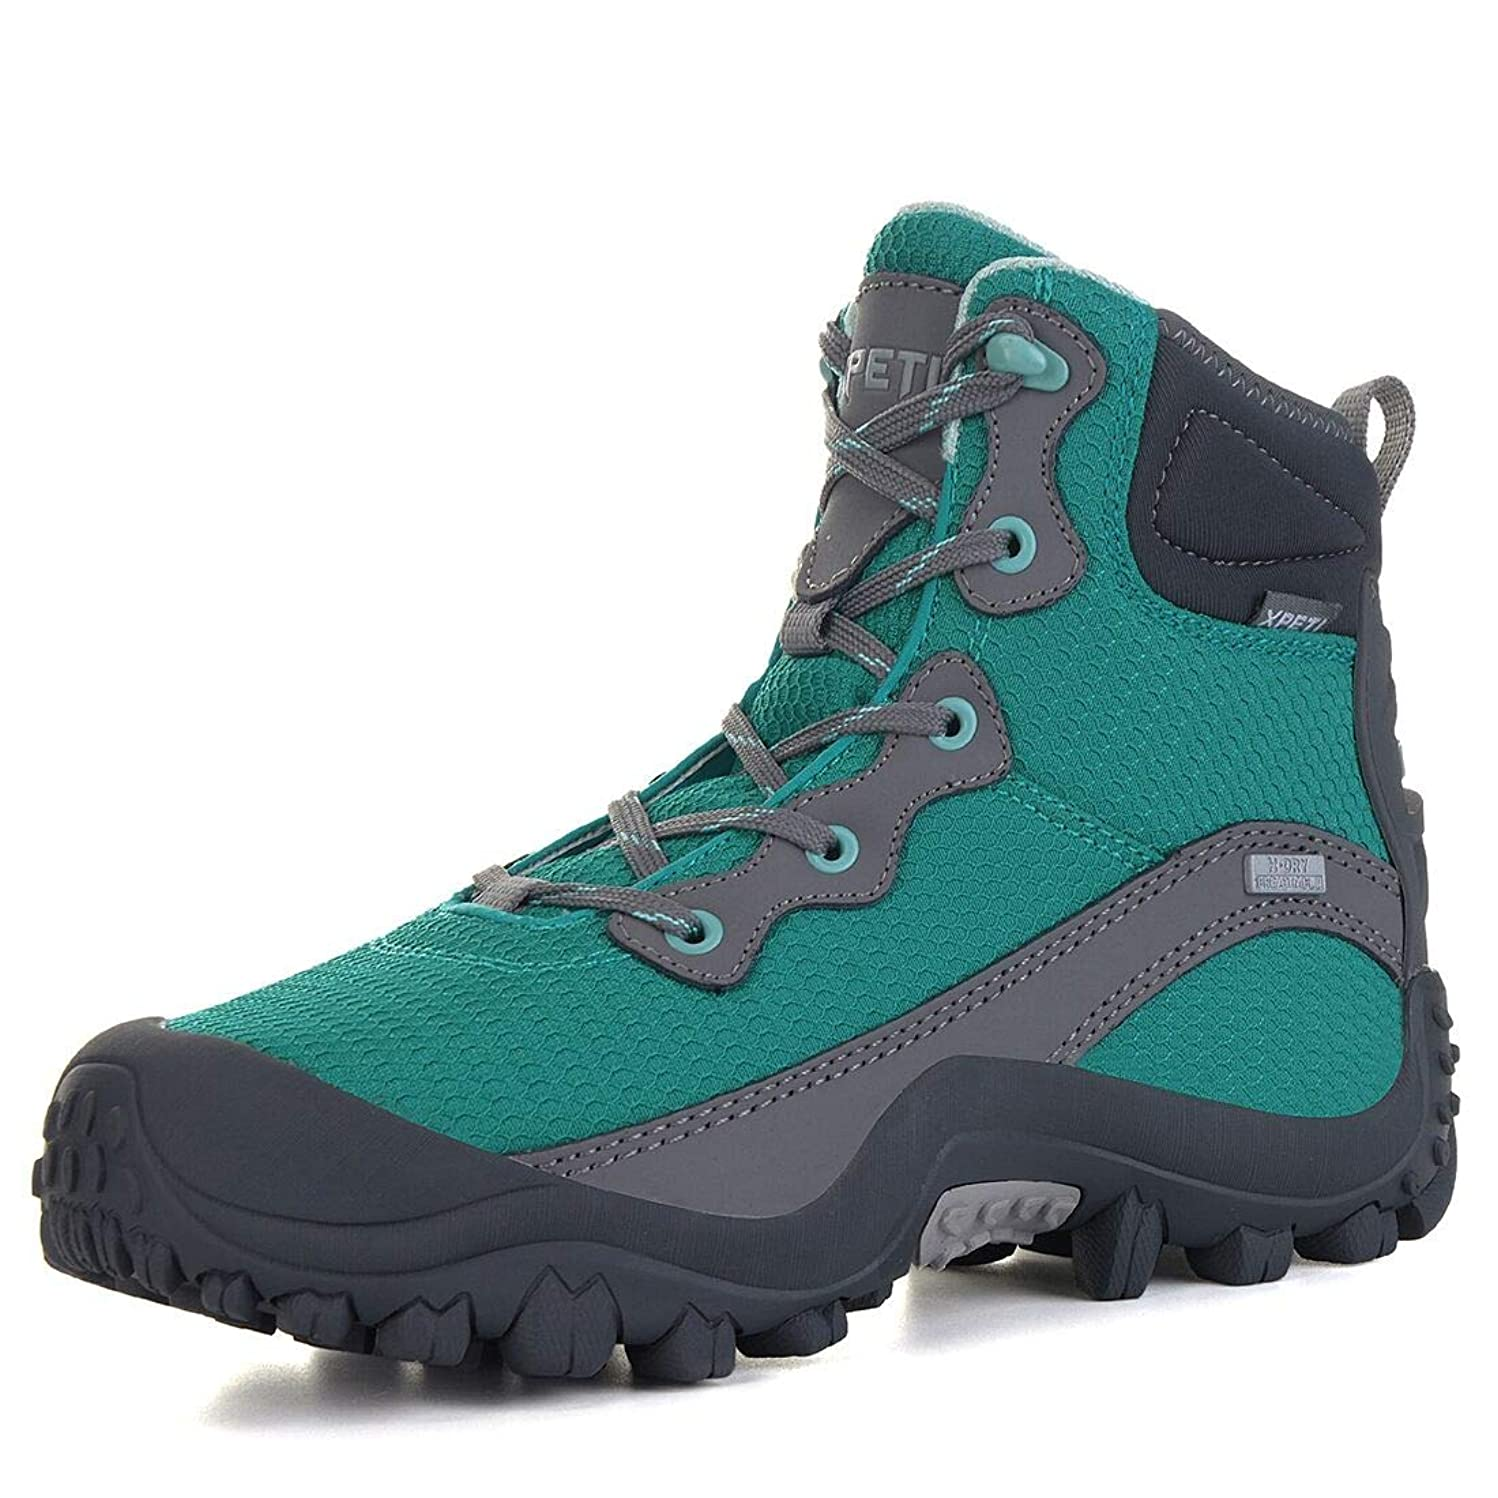 GEAR DEPOT Women's Dimo Hiking Boots, Mid Waterproof Trekking Outdoor Boot